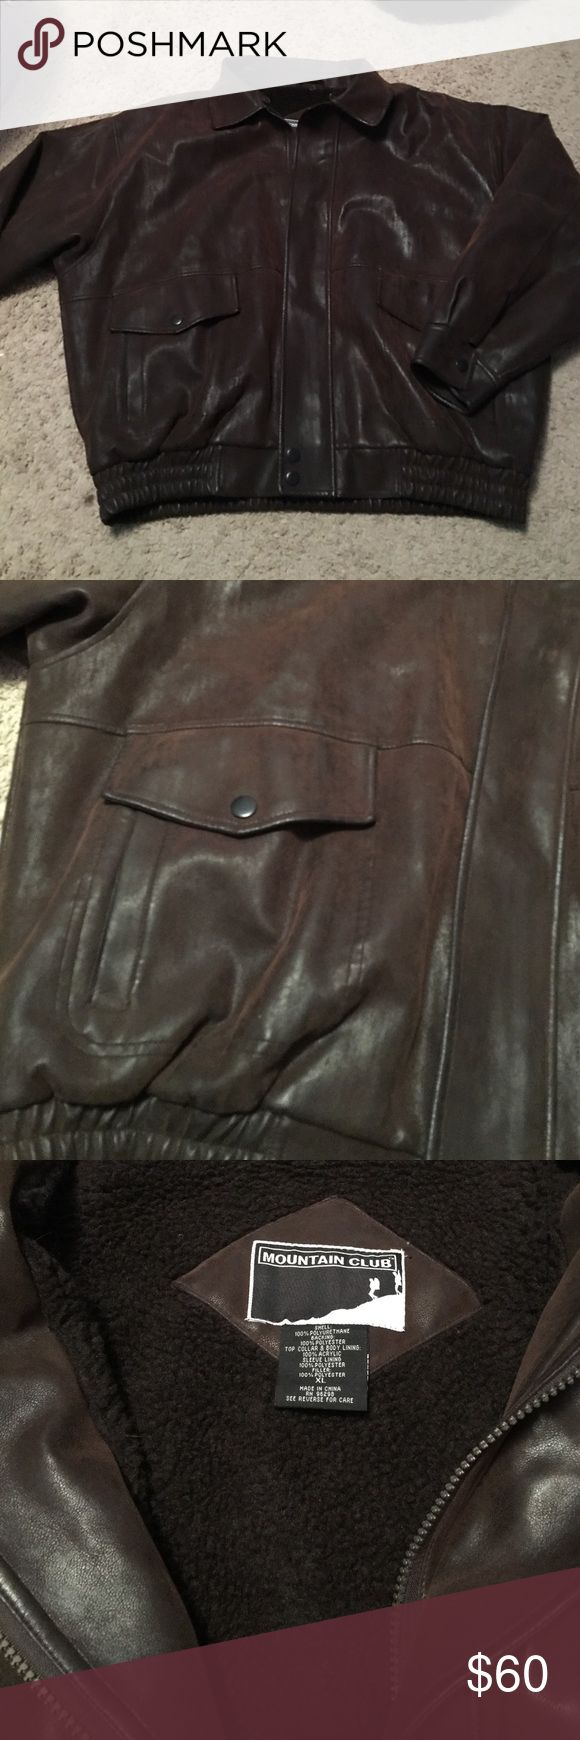 Mountain Club Jacket size XL Mountain club jacket size XL. Has fleece on the inside. Brown color. Worn once. Mountain Club Jackets & Coats Bomber & Varsity